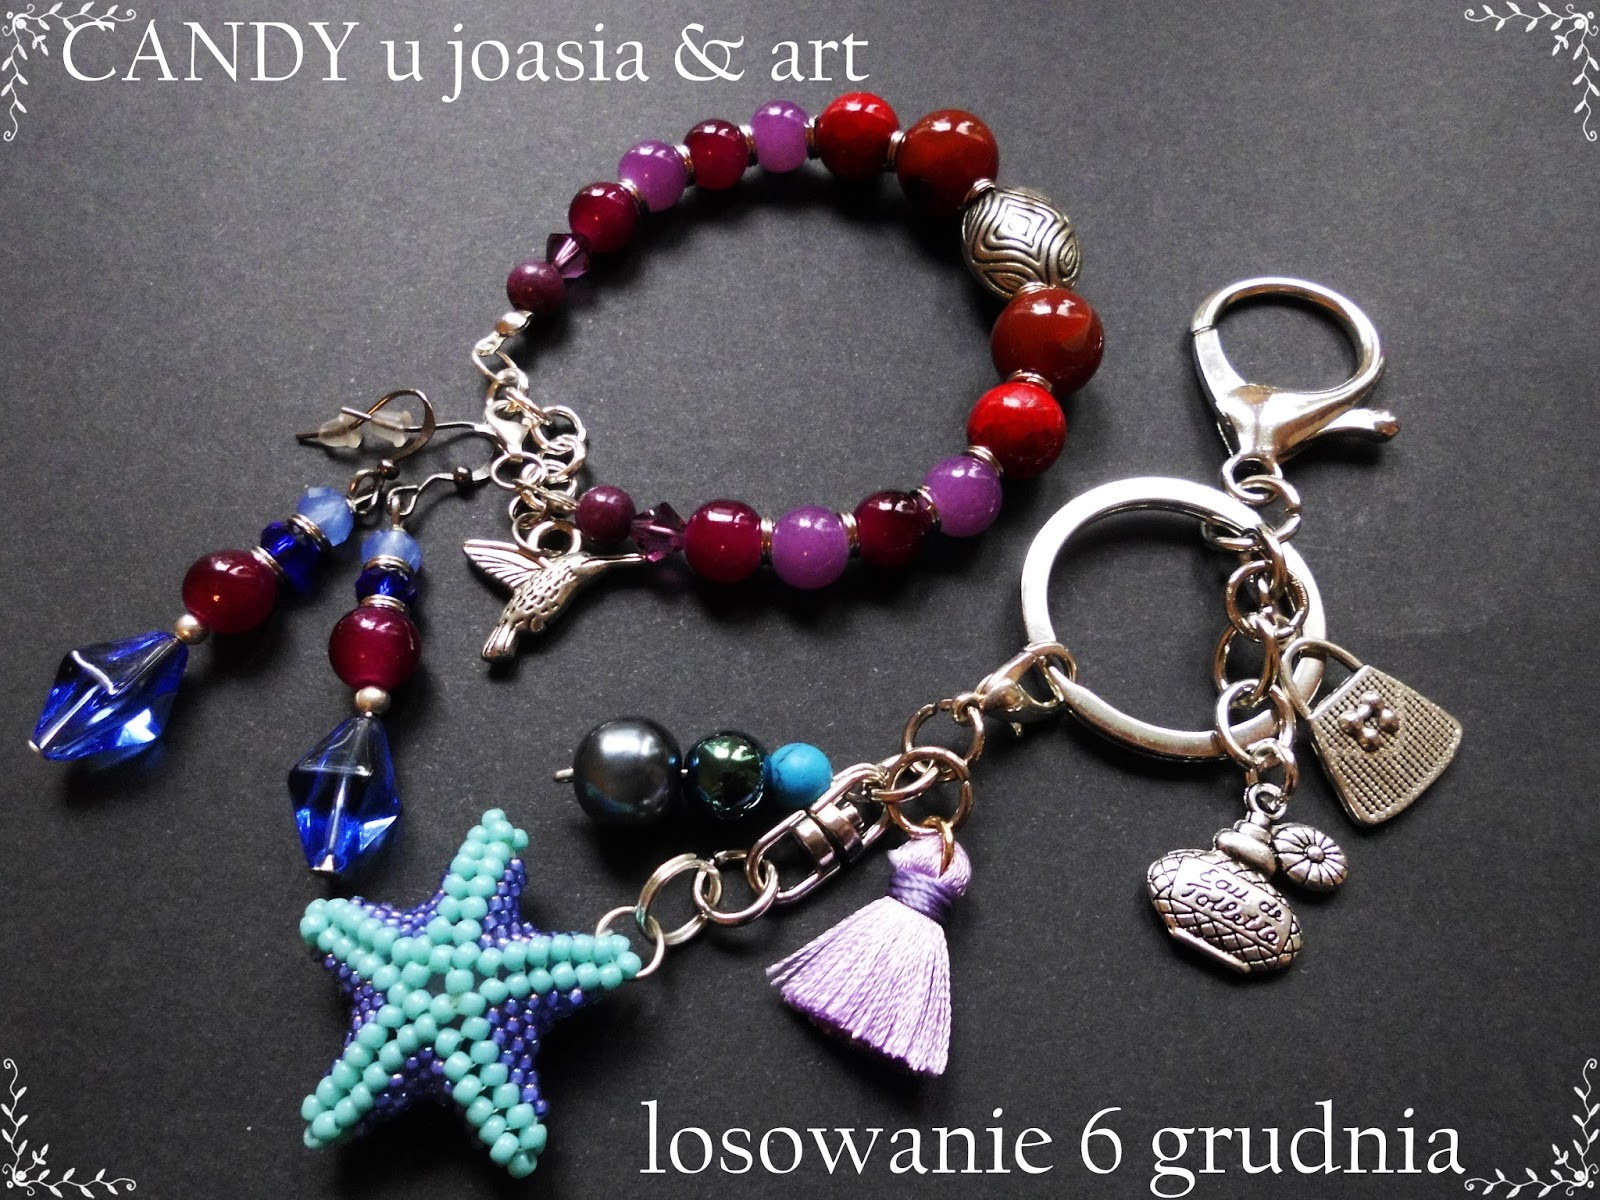 Candy u joasia & art